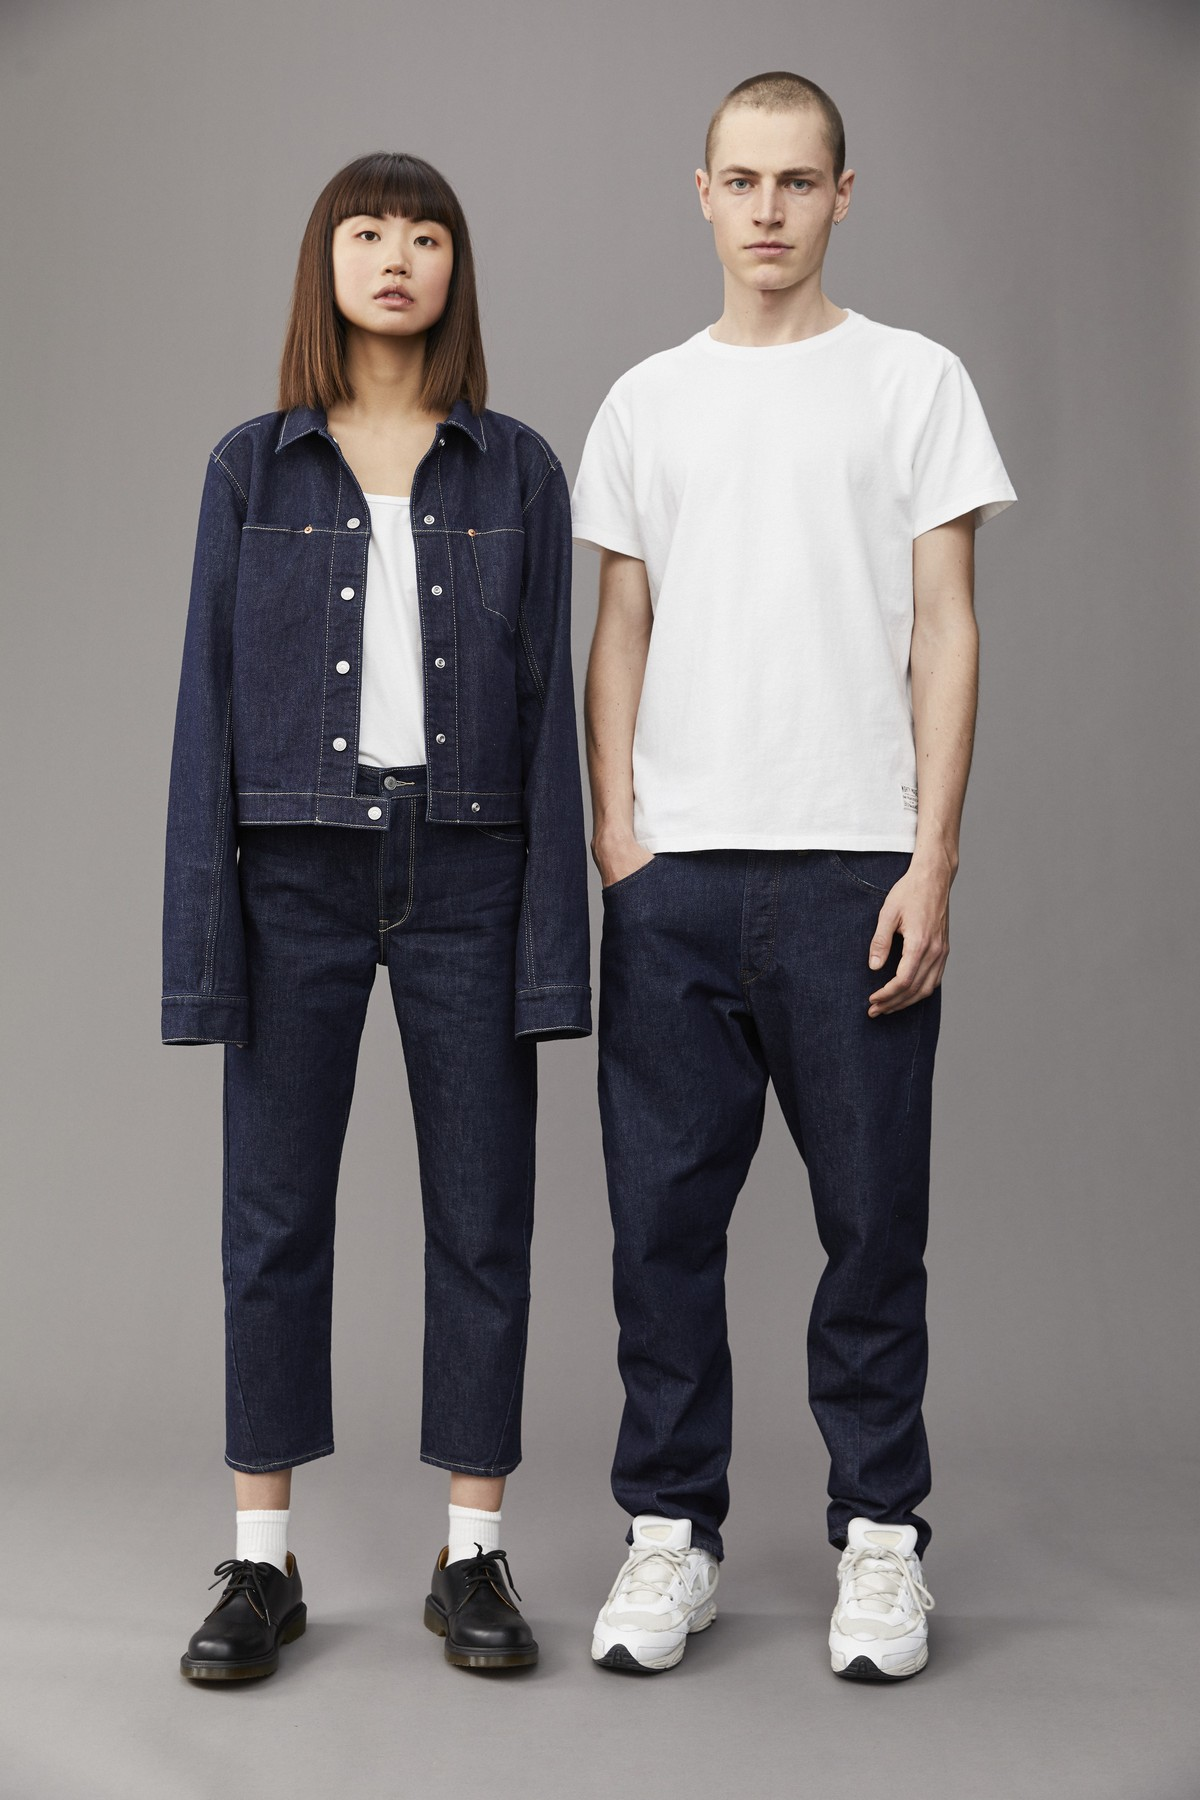 Levi's Engineered Jeans 2019